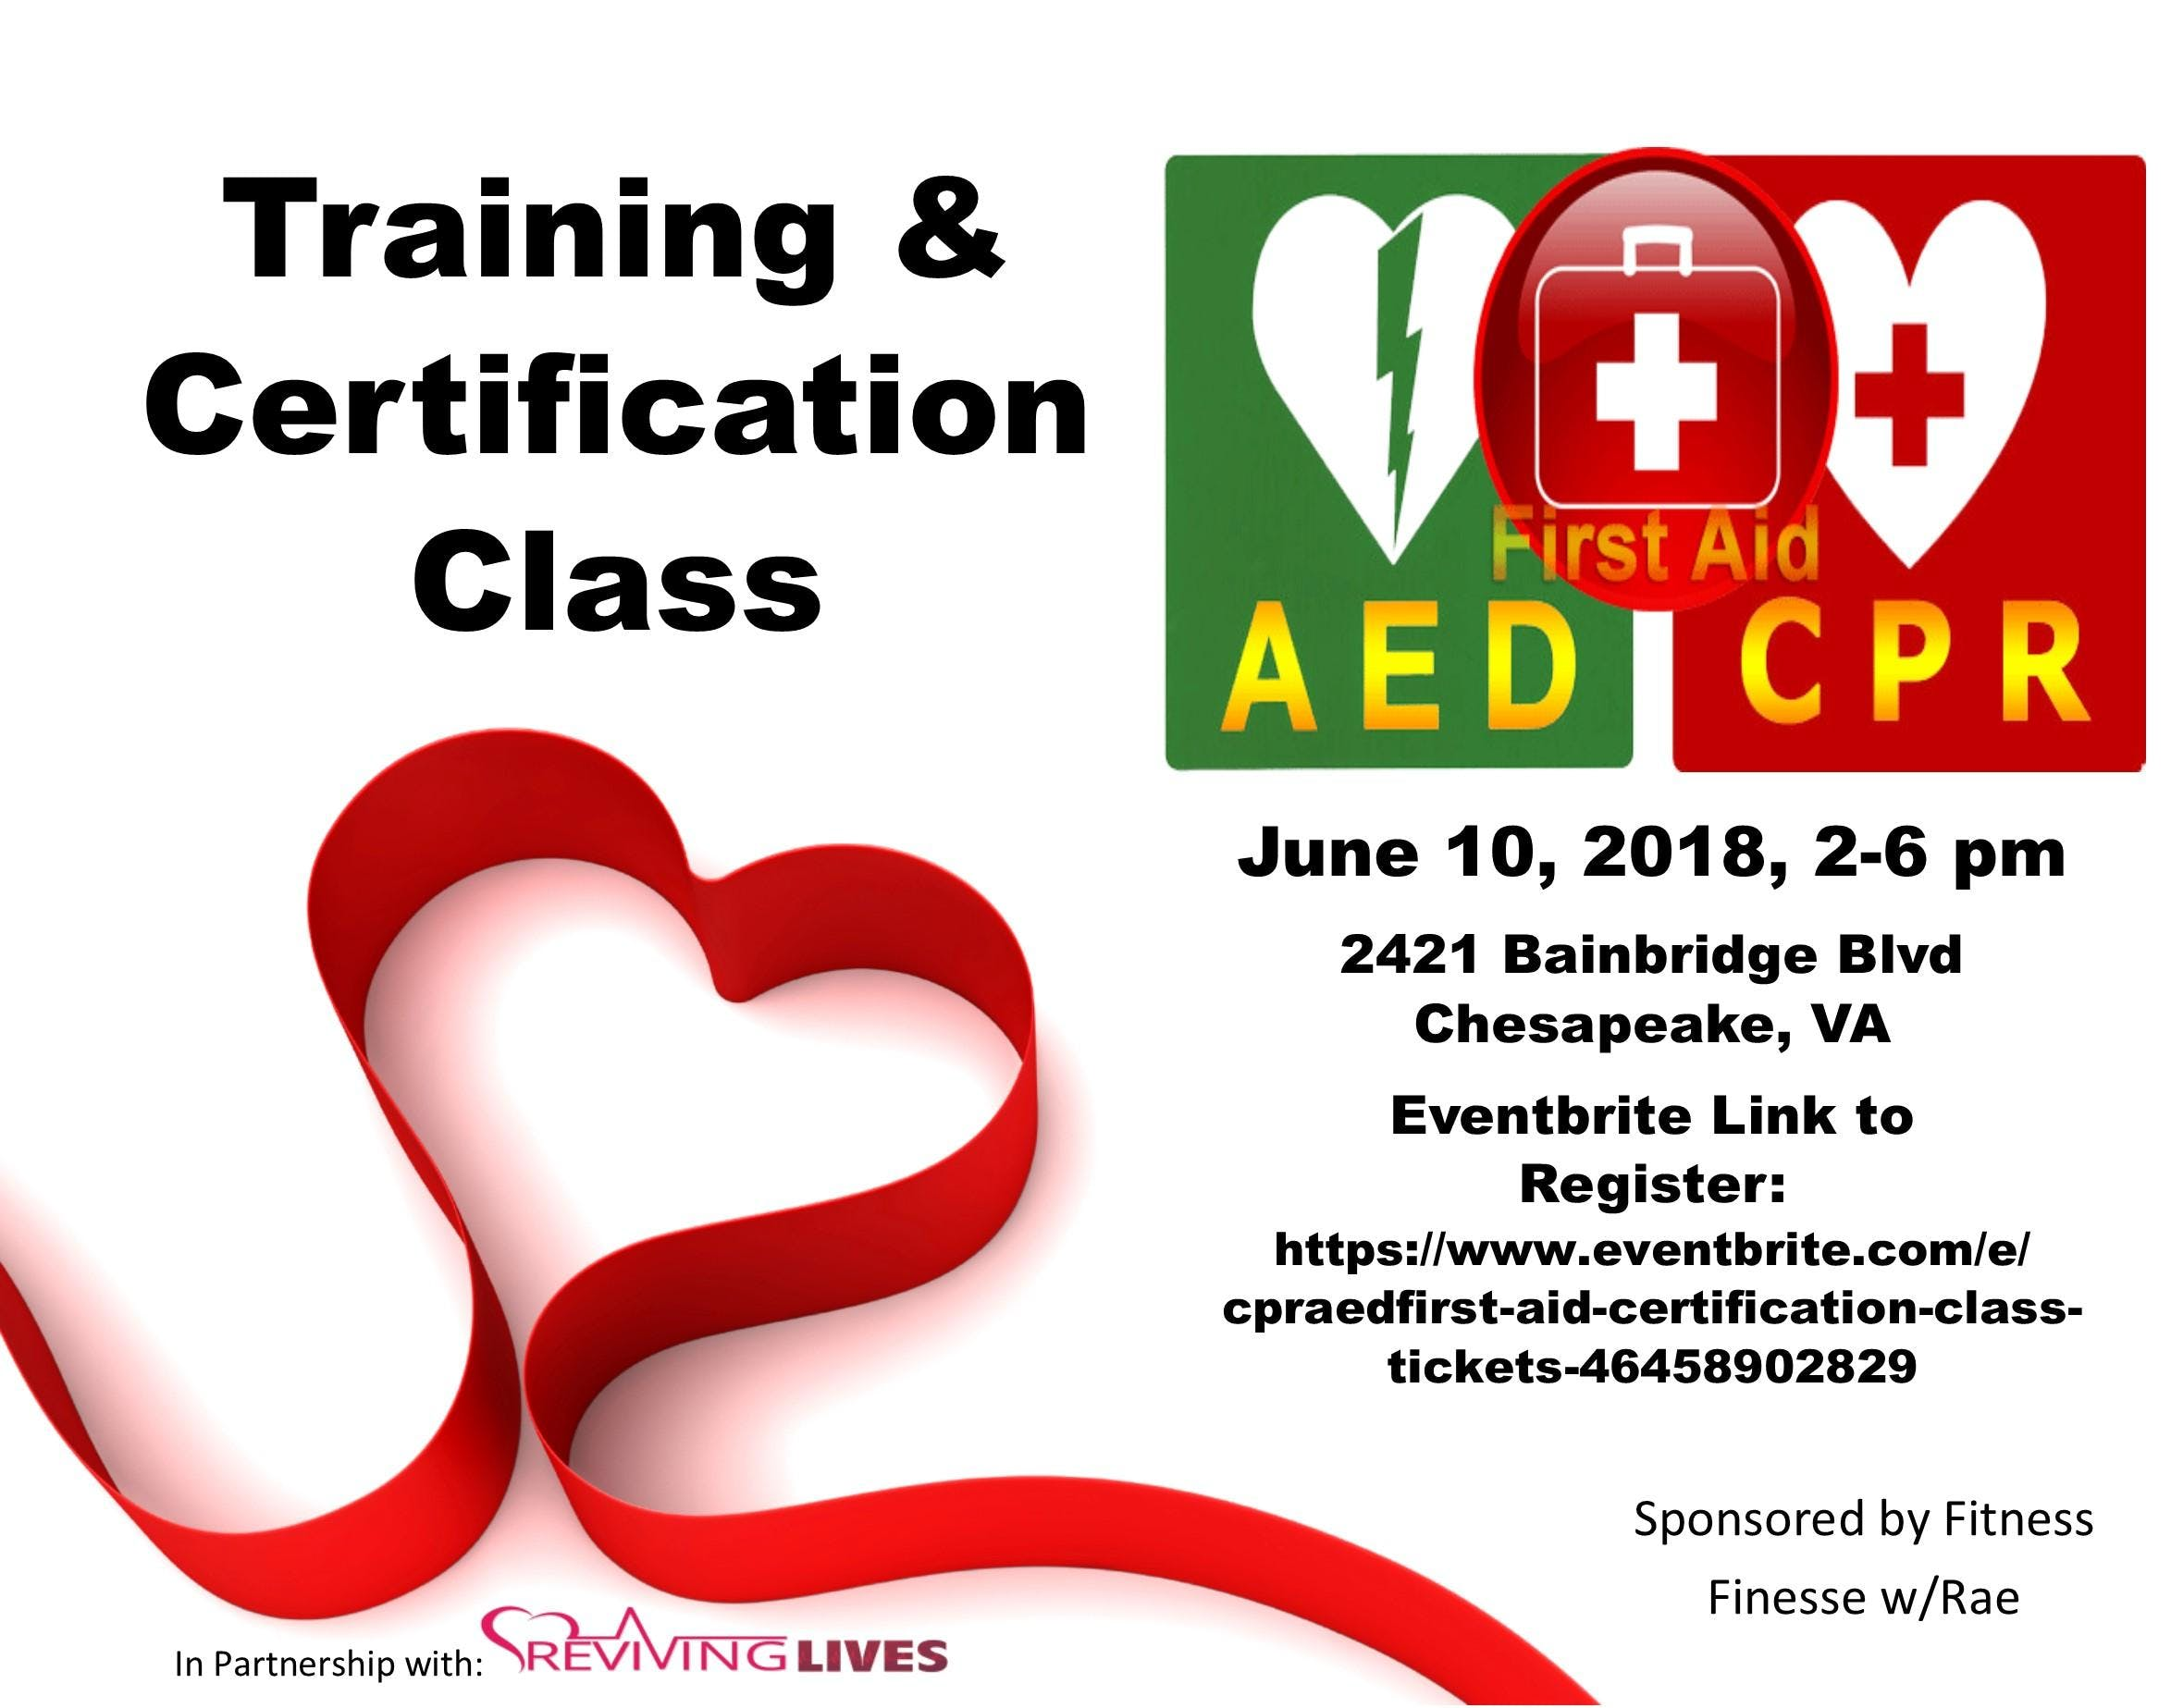 Cpraedfirst Aid Certification Class 10 Jun 2018